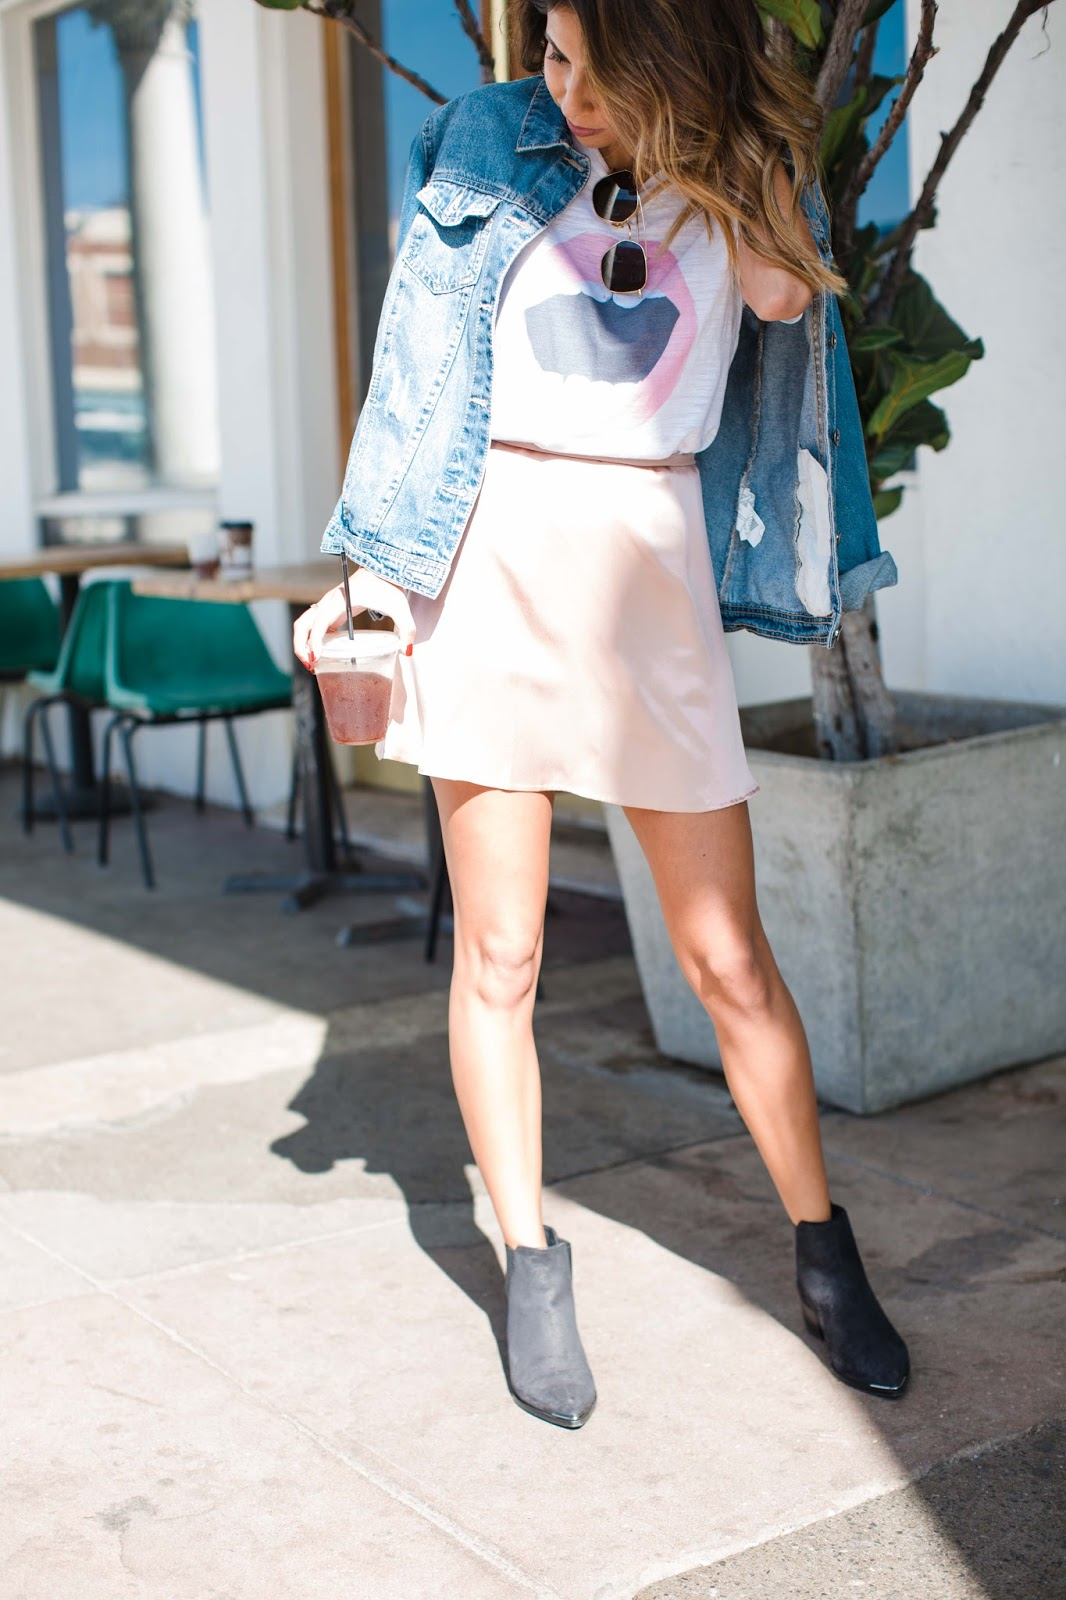 how to wear a silk skirt, how to wear graphic t-shirt, lips t-shirt, casual venice outfit